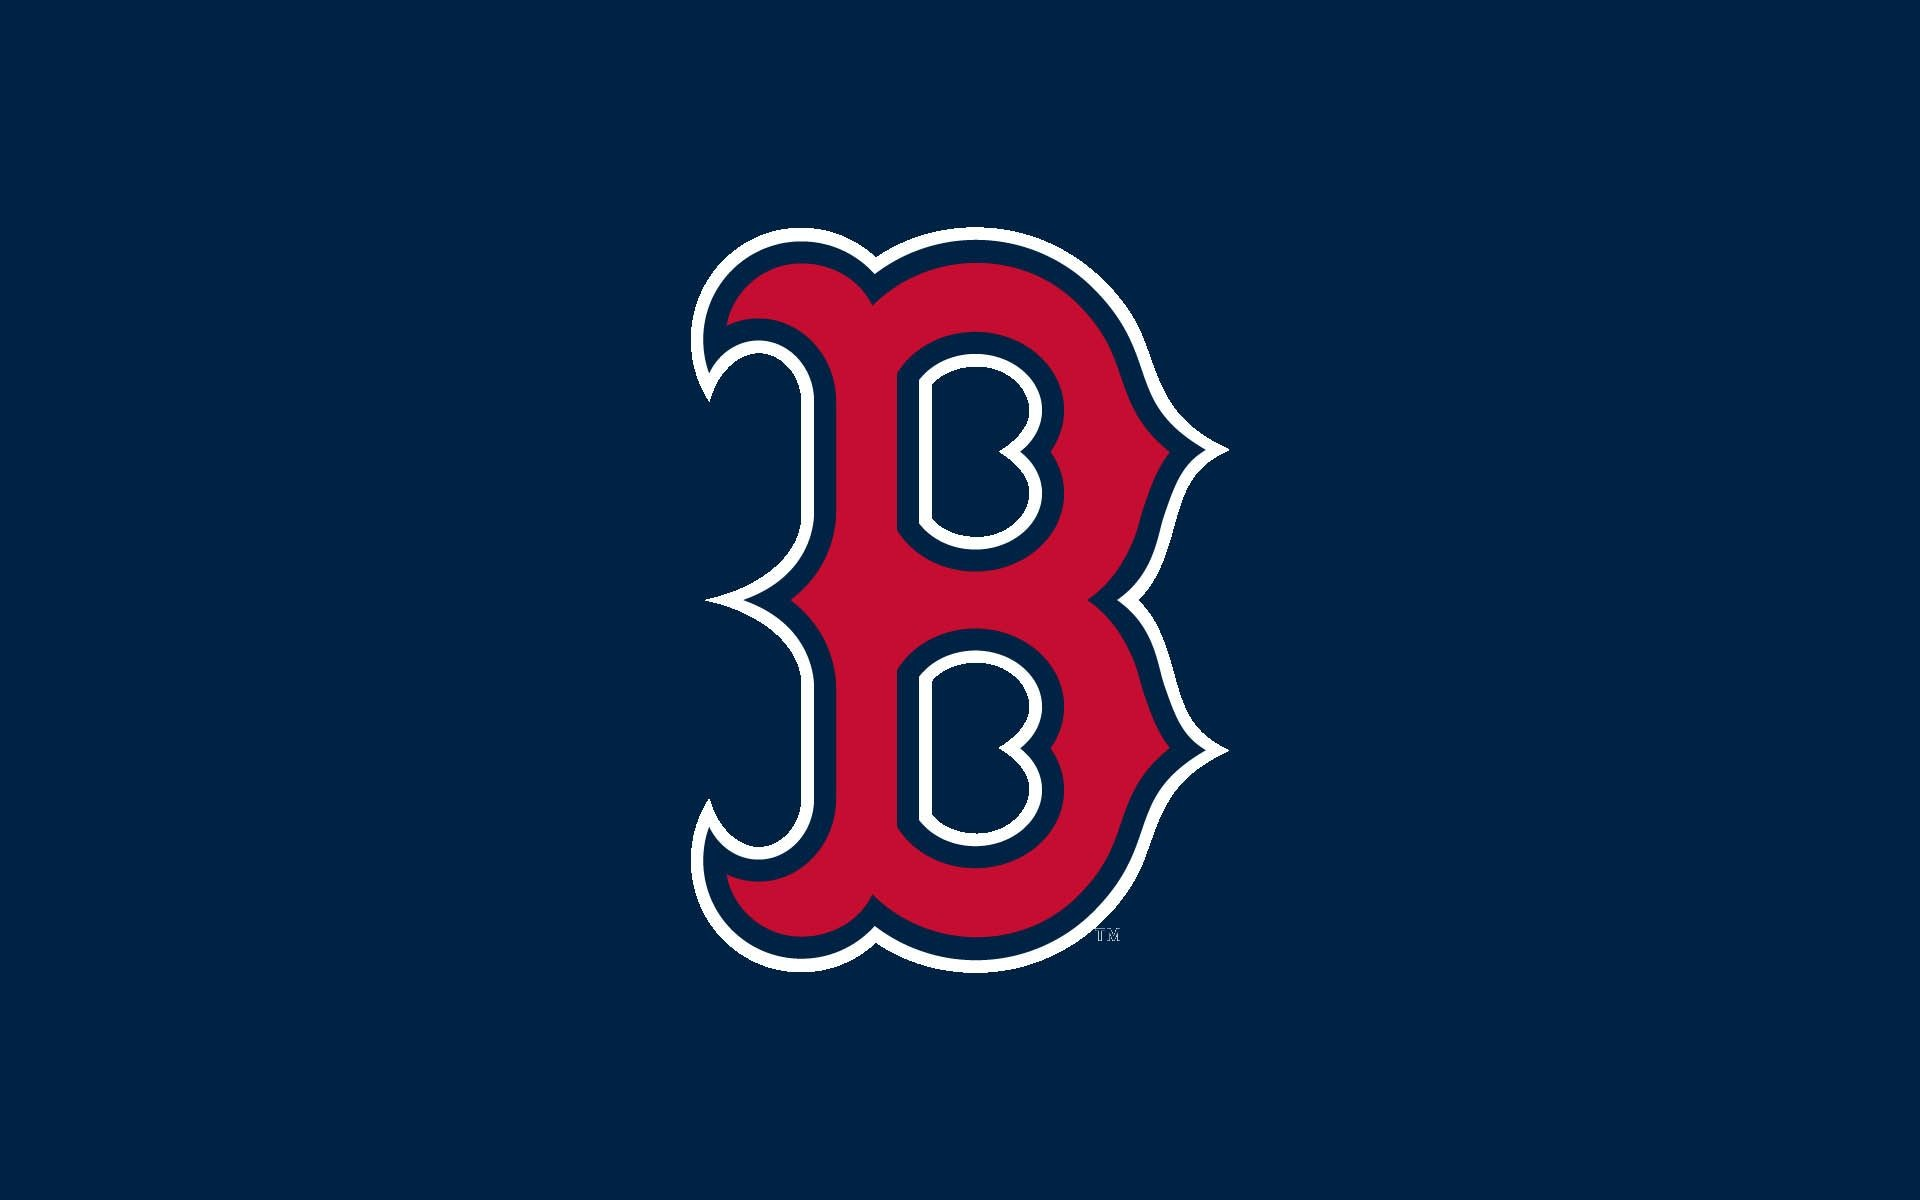 1920x1200 Red Sox Wallpaper for iPhone A Collection of